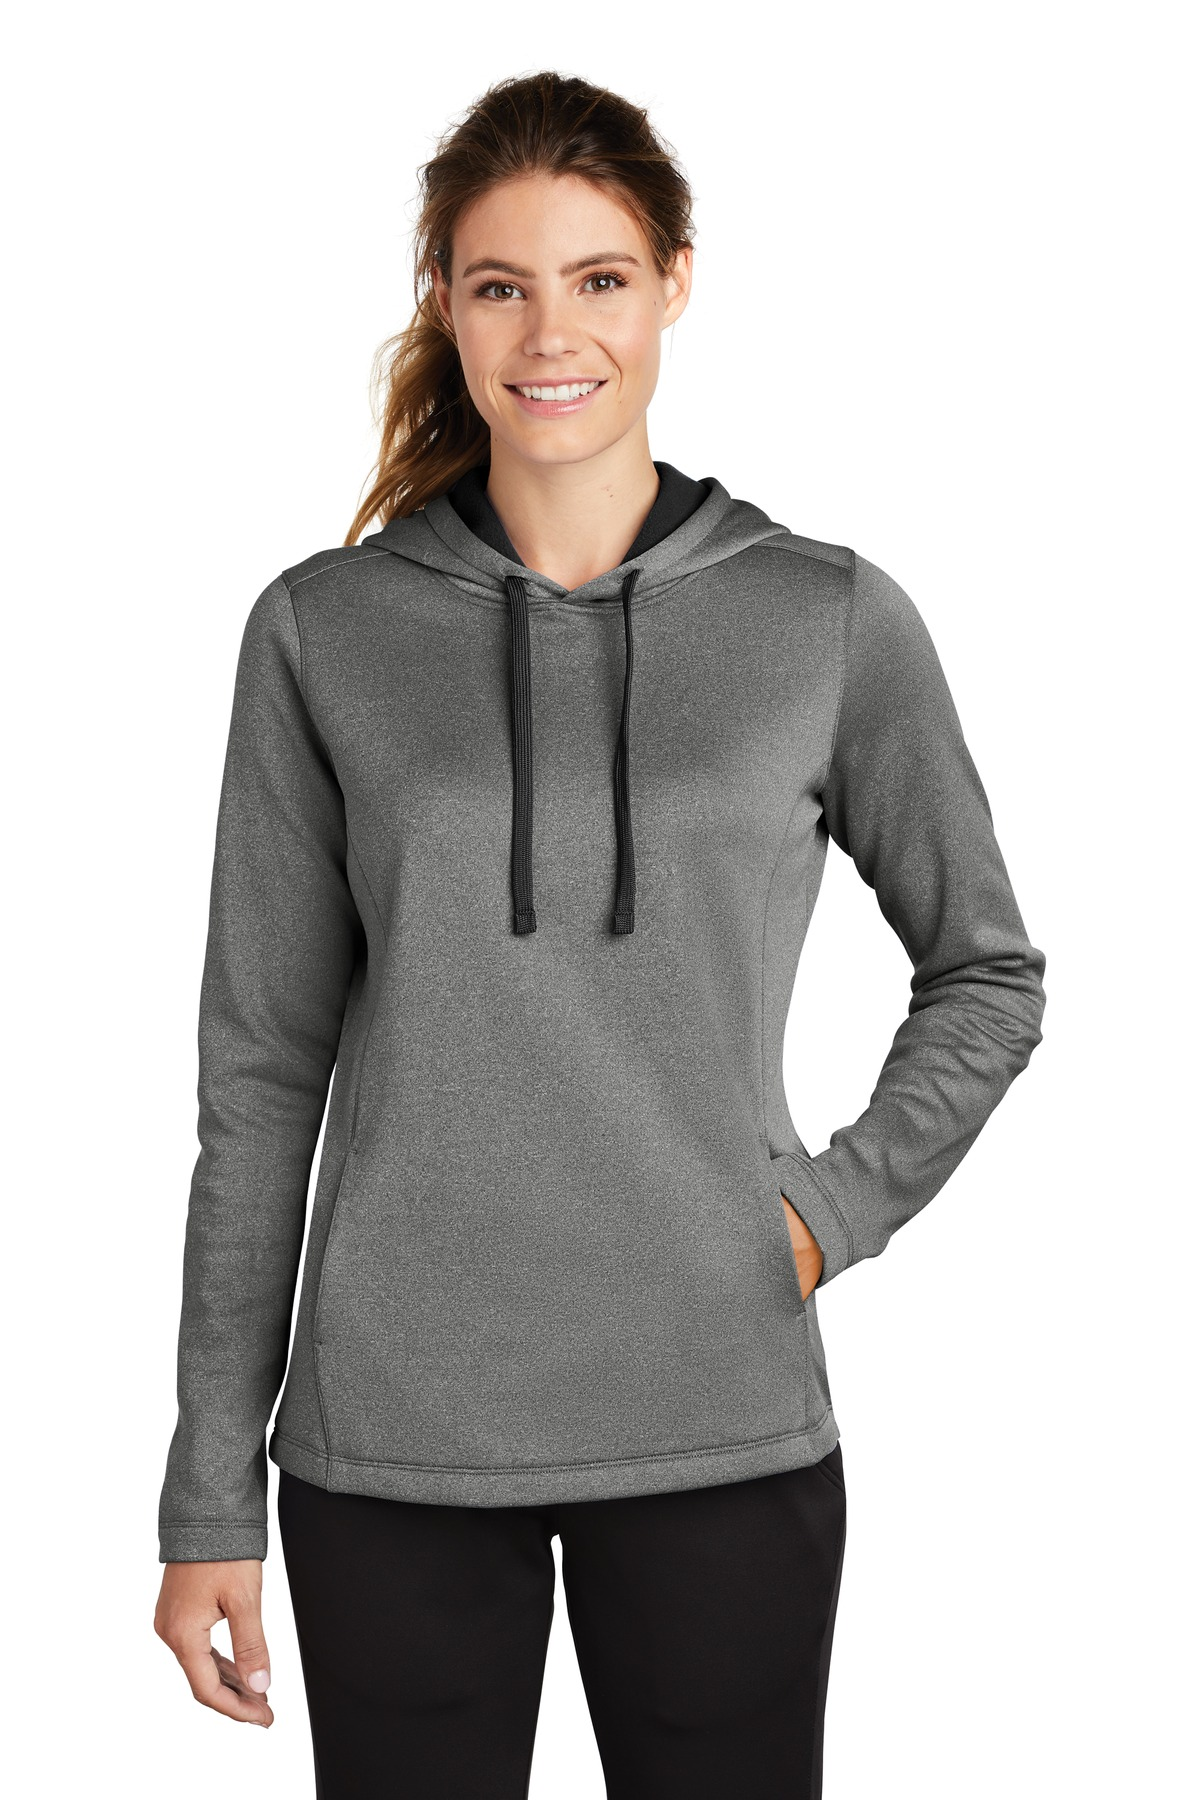 Sport-Tek  ®  Ladies PosiCharge  ®  Sport-Wick  ®  Heather Fleece Hooded Pullover. LST264 - Black Heather